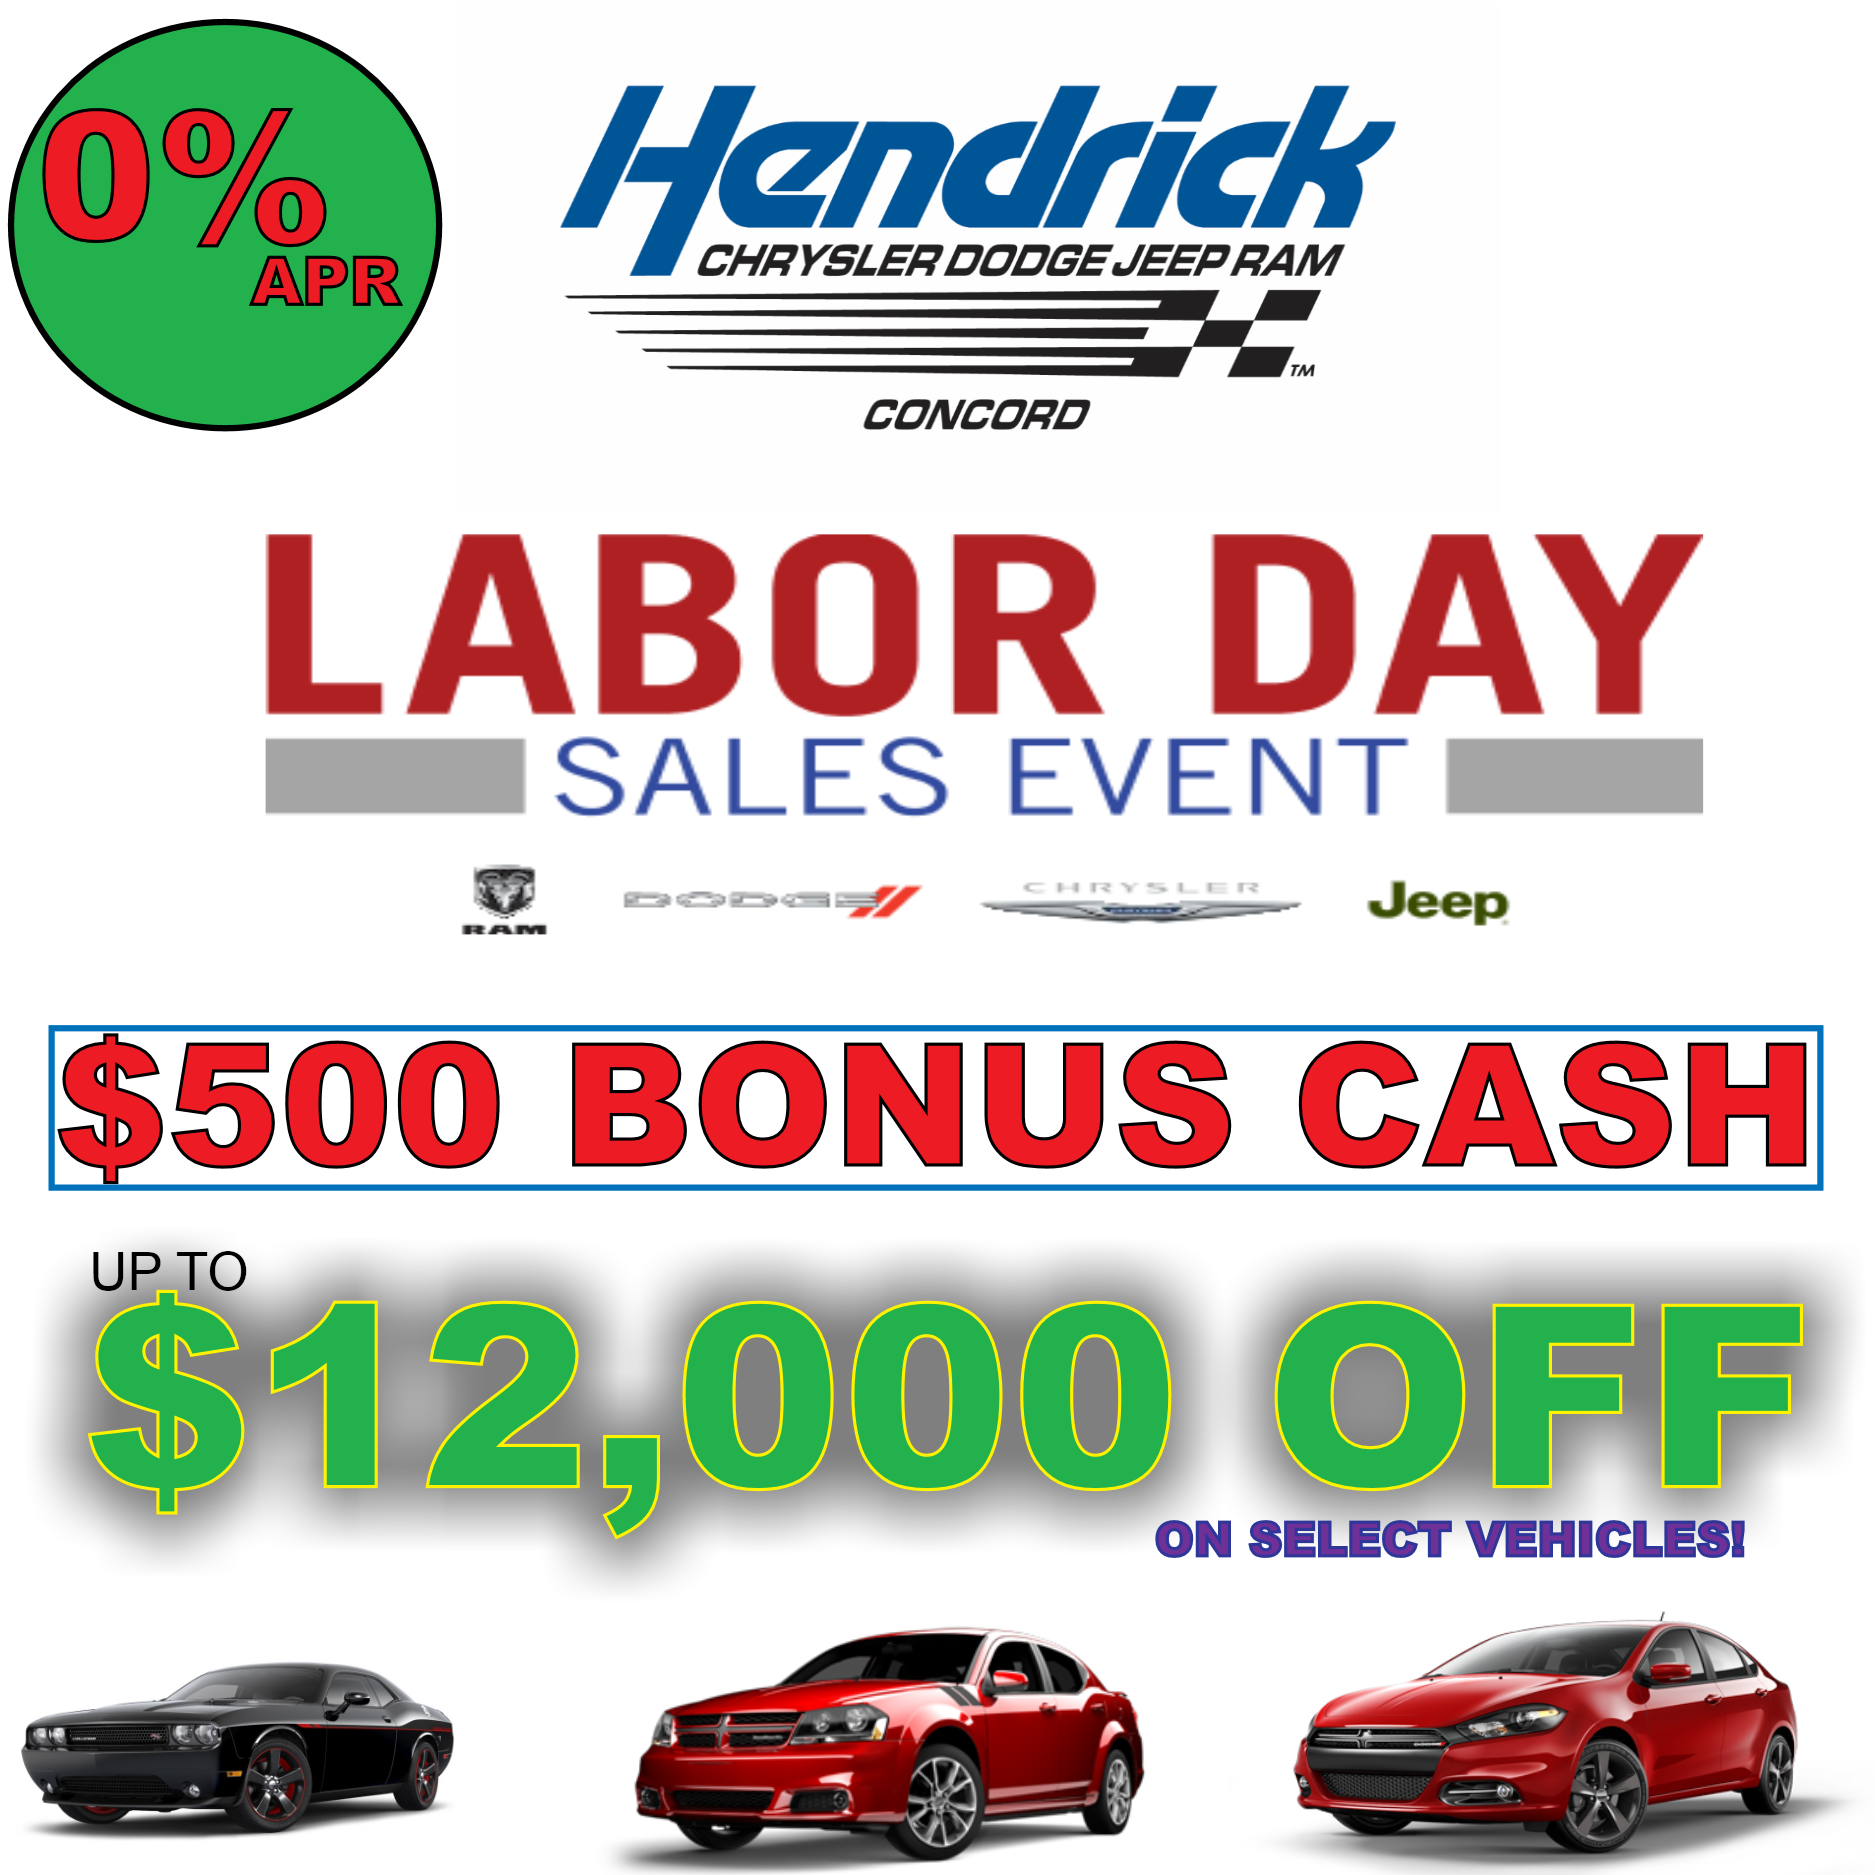 Hendrick Chrysler Dodge Jeep Ram FIAT Of Concord